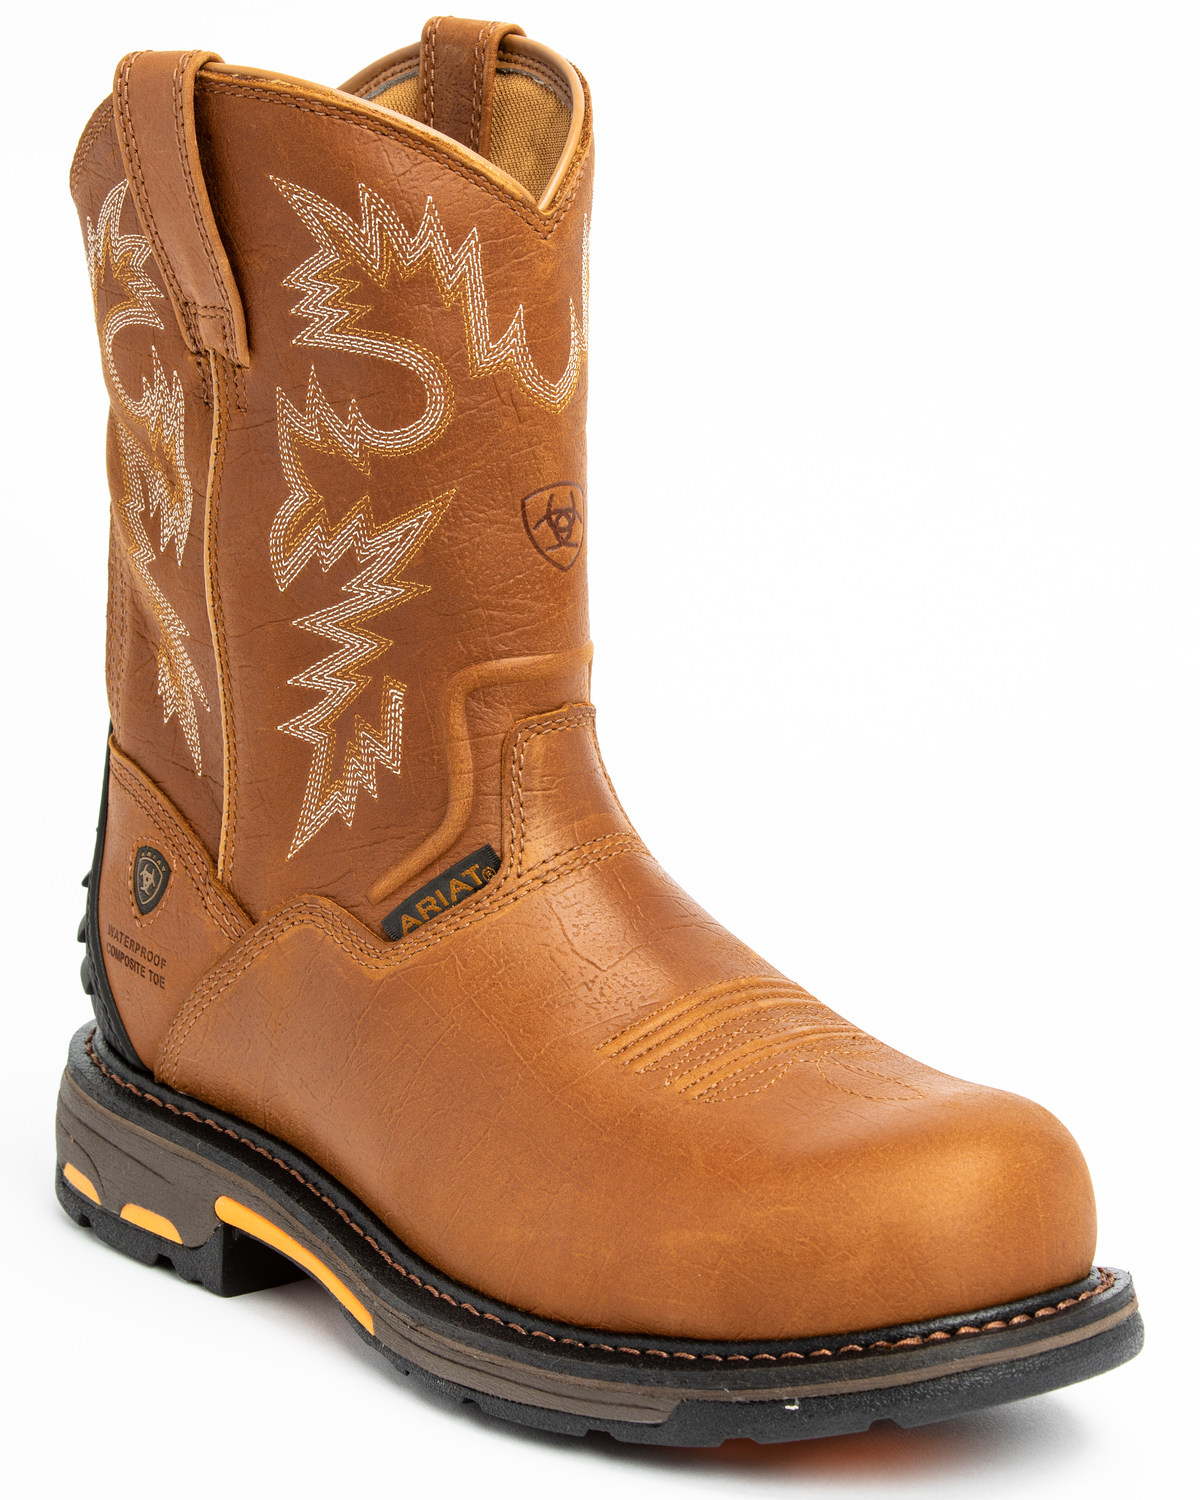 Ariat Mens Workhog Pull-on H2O Composite Toe